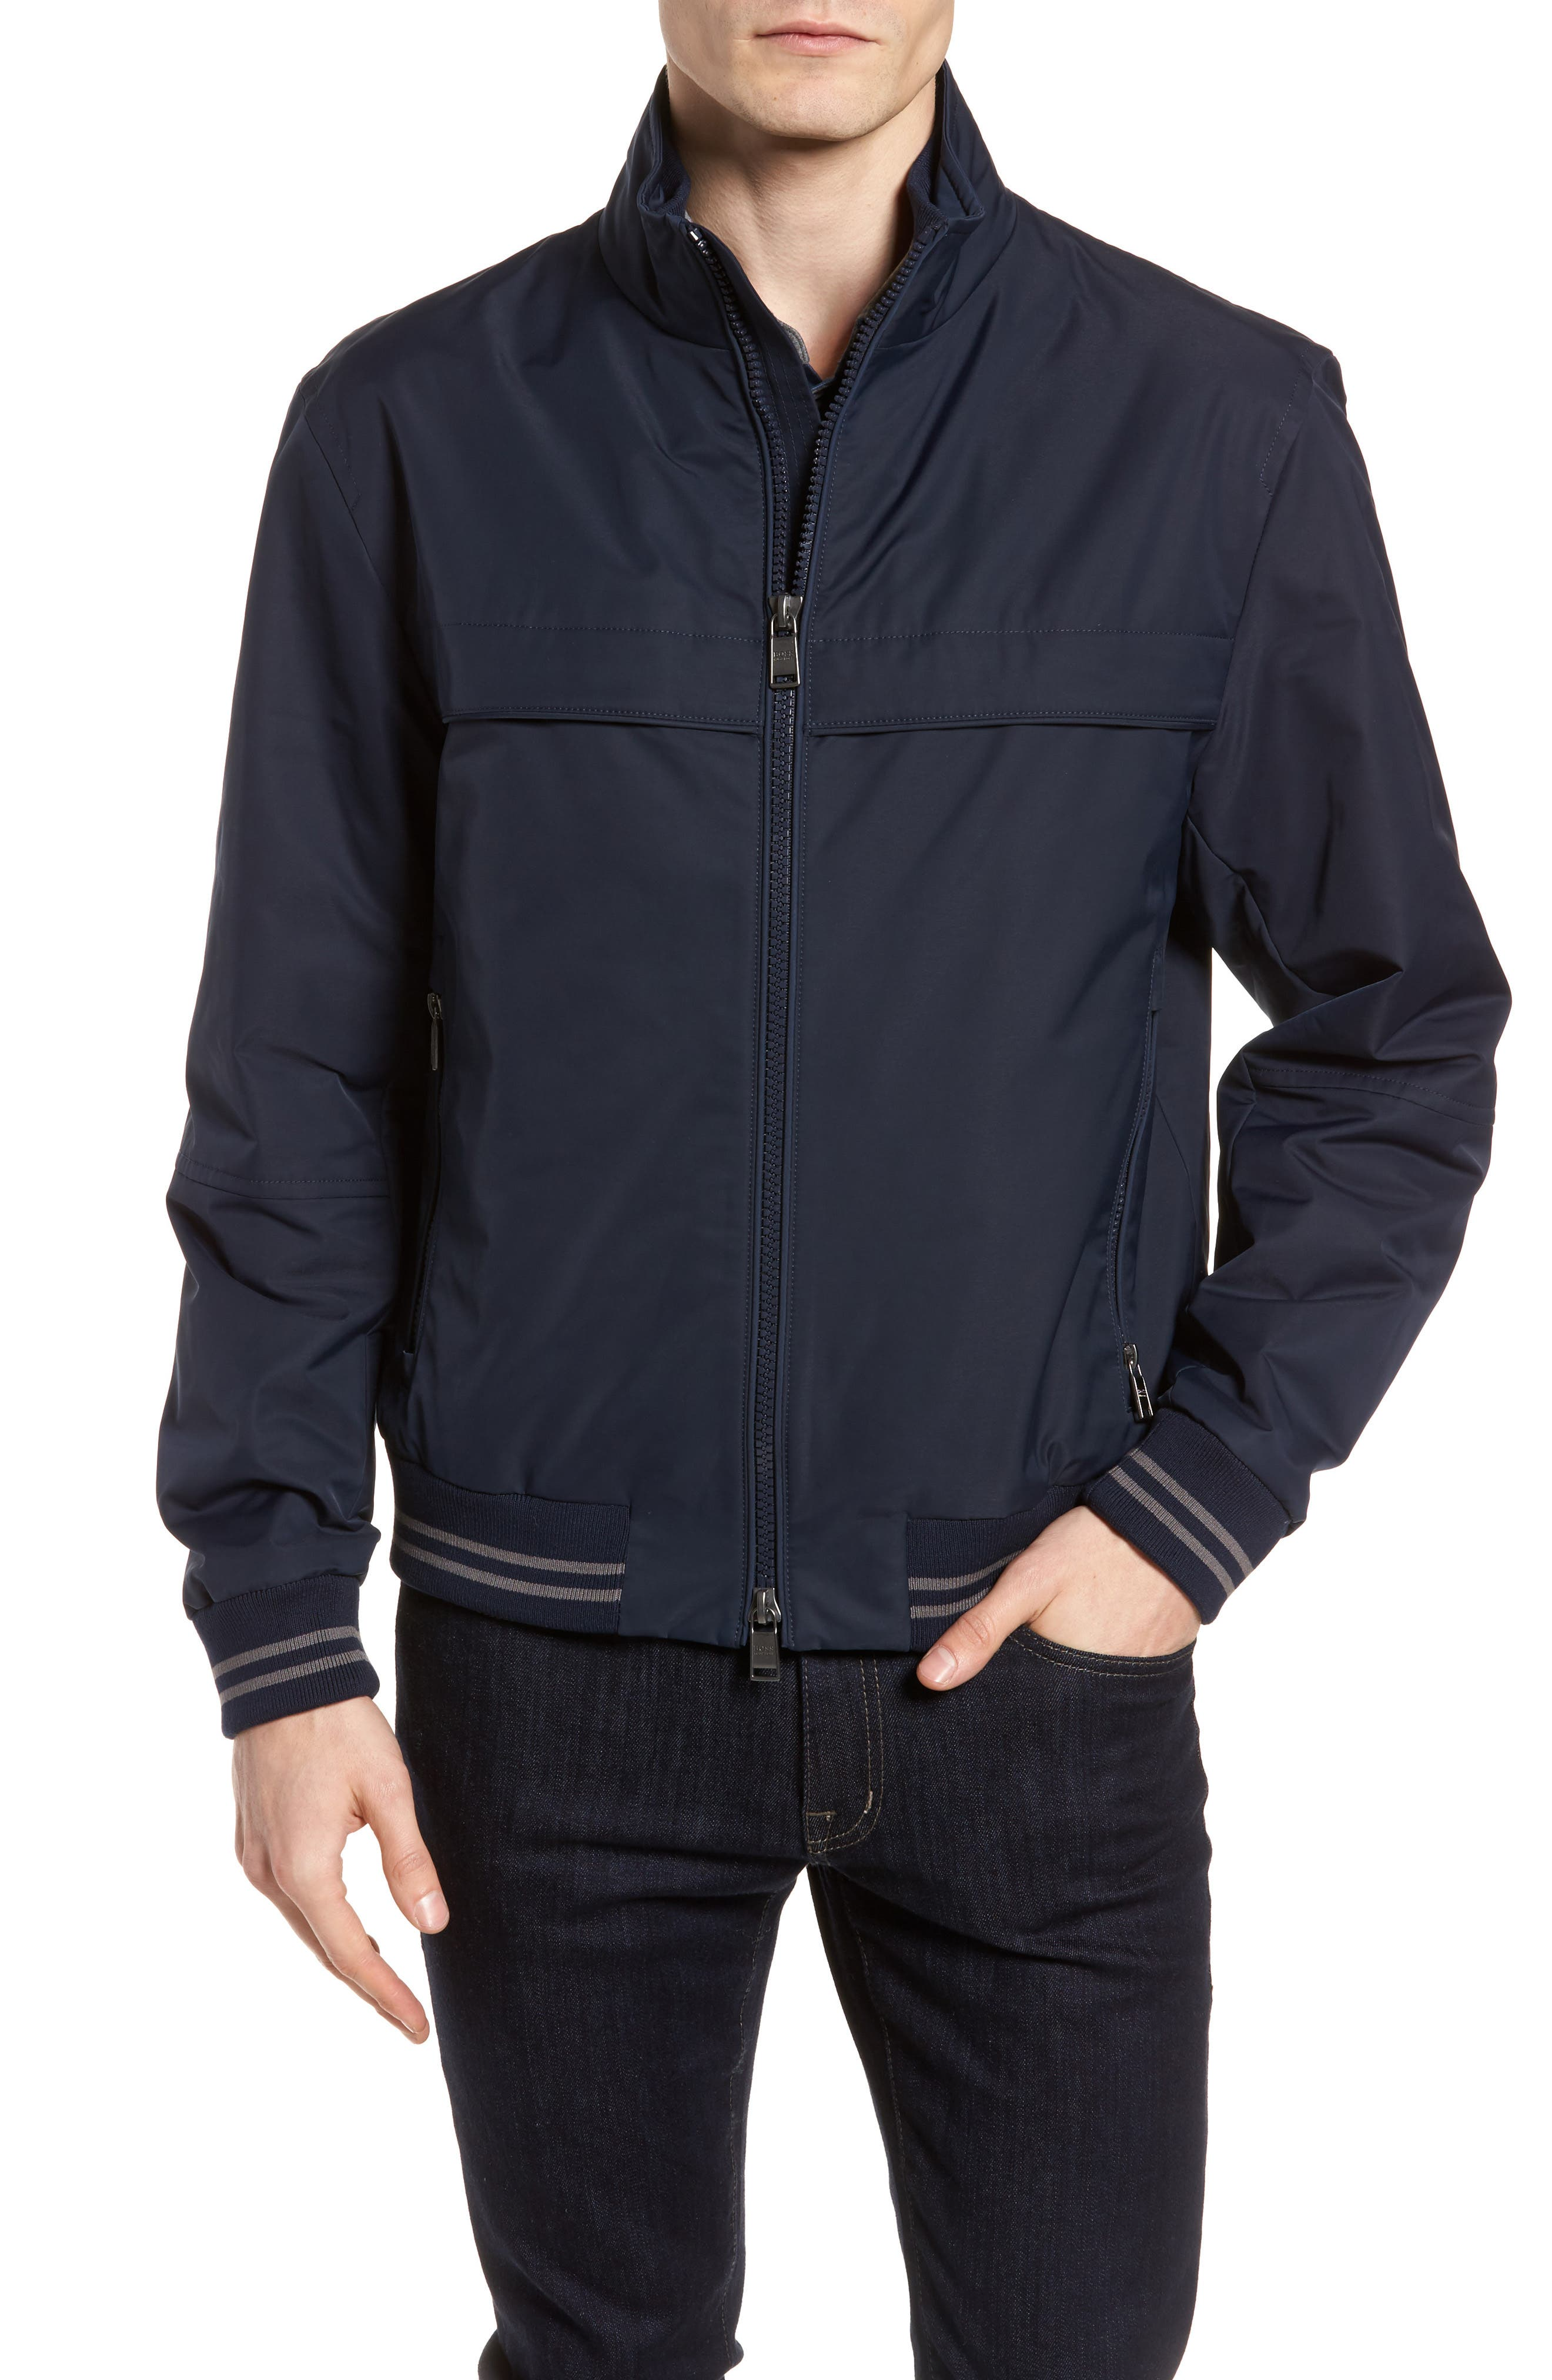 Cossito Regular Fit Bomber Jacket,                         Main,                         color, 410